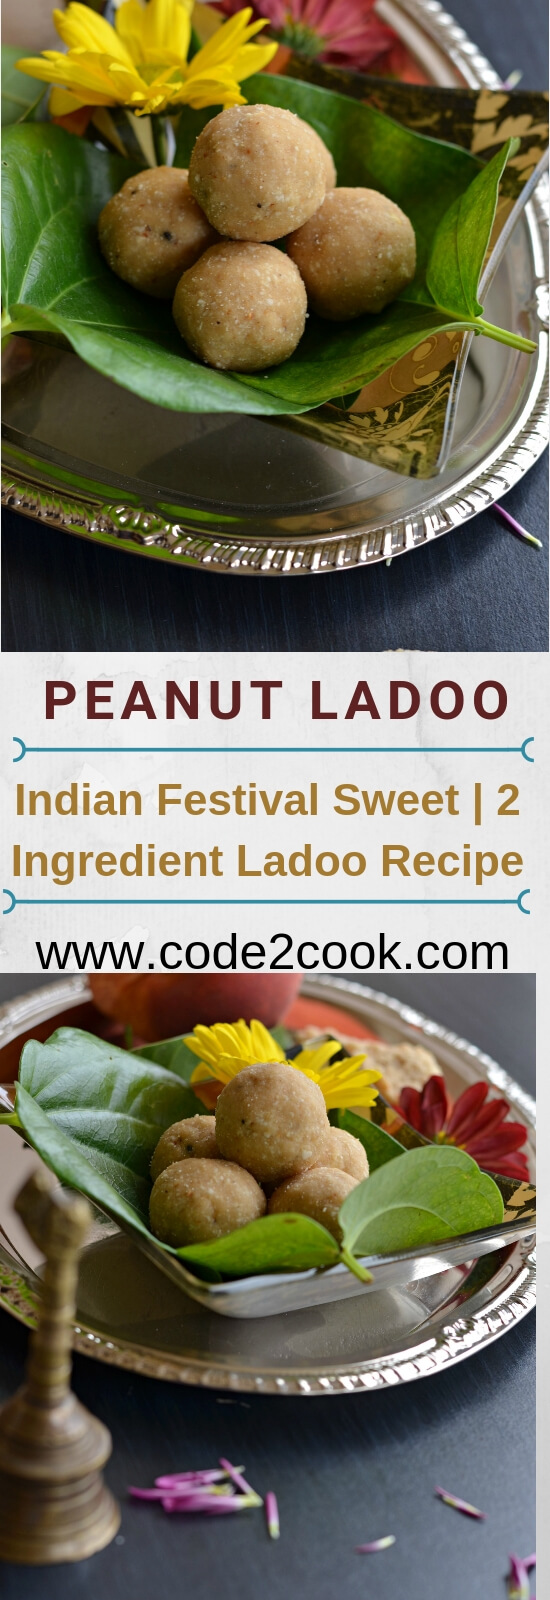 Peanut ladoo is another easy to make and simple ladoo recipe with just two ingredients. It is made with grated jaggery and dry roasted peanut. Oil in the peanut and moisture in the jaggery is good enough to bind these easy peanut ladoo. Being refined sugar-free these peanut ladoo with jaggery are very healthy and nutritious.